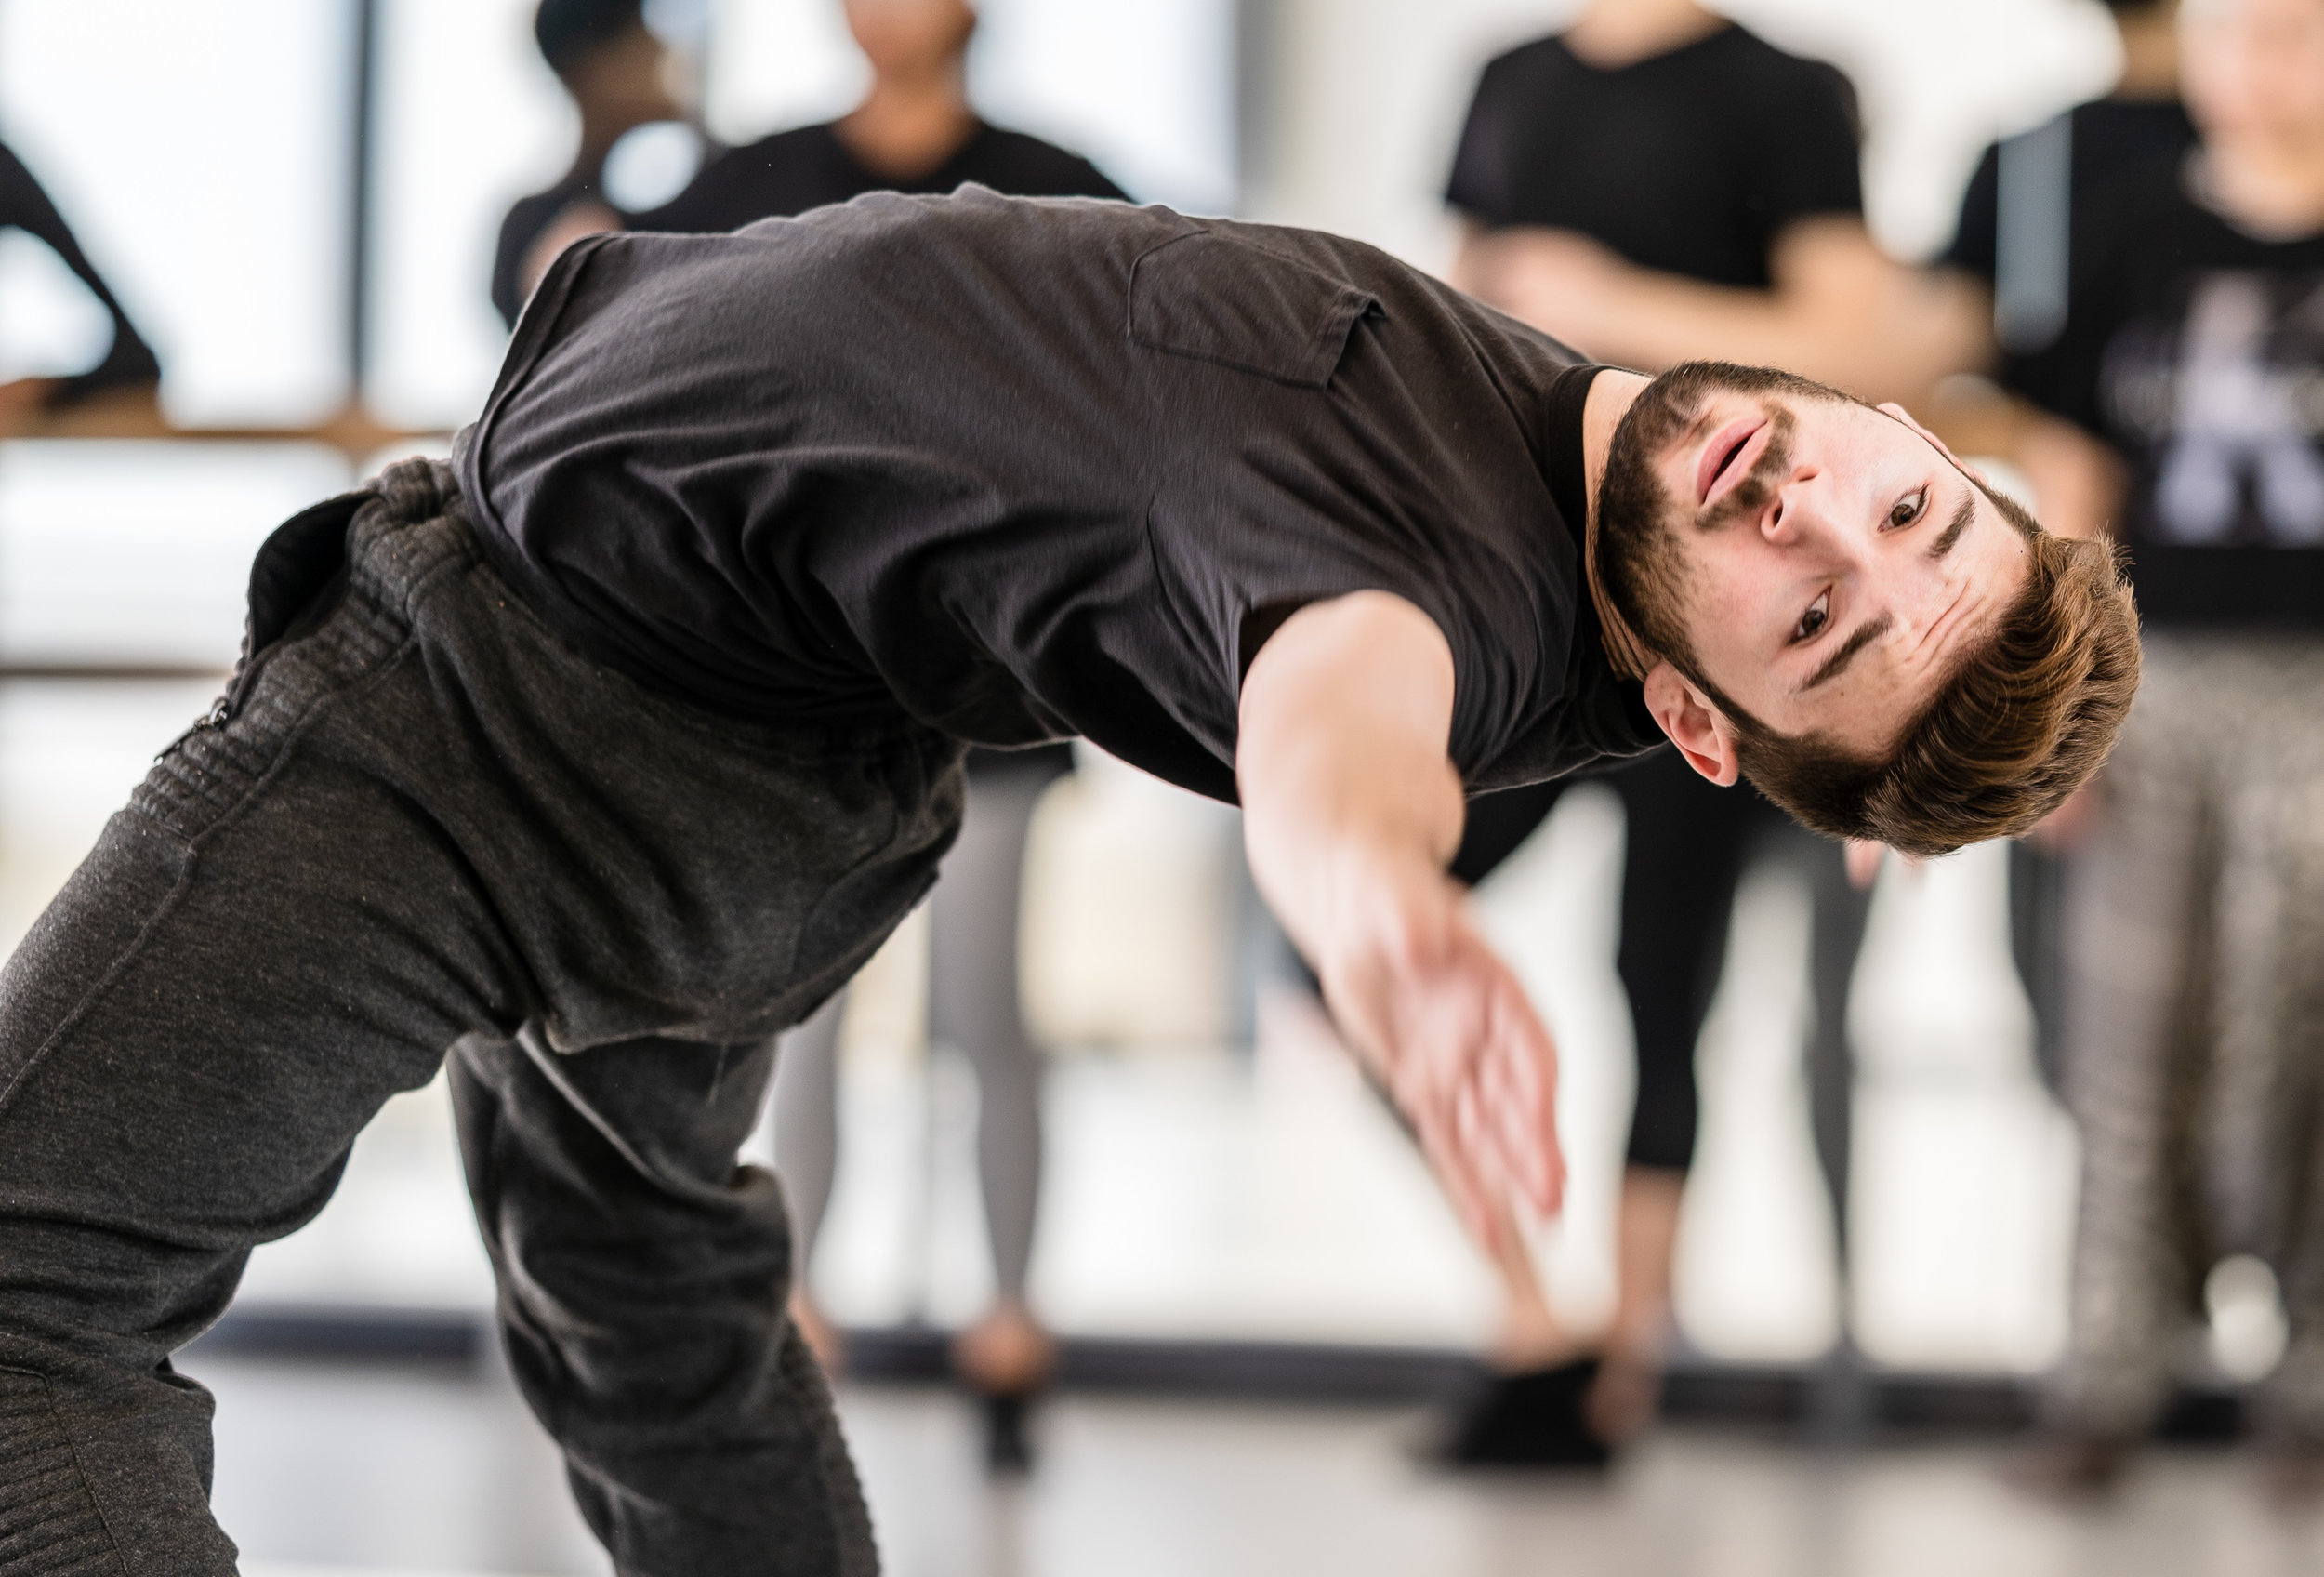 SMC dancer Christopher DePiazza works with Aya Nakaguchi's choreography in a rehearsal for Nakaguchi's new, not-yet-titled work for Synapse Dance Theater in the Core Performance Center (CPC) on Tuesday, March 12, 2019. Synapse Dance Theater will be presented on Friday and Saturday, May 24 and 25, on the SMC Broad Stage at the Performing Arts Complex (PAC) (Glenn Zucman/The Corsair)